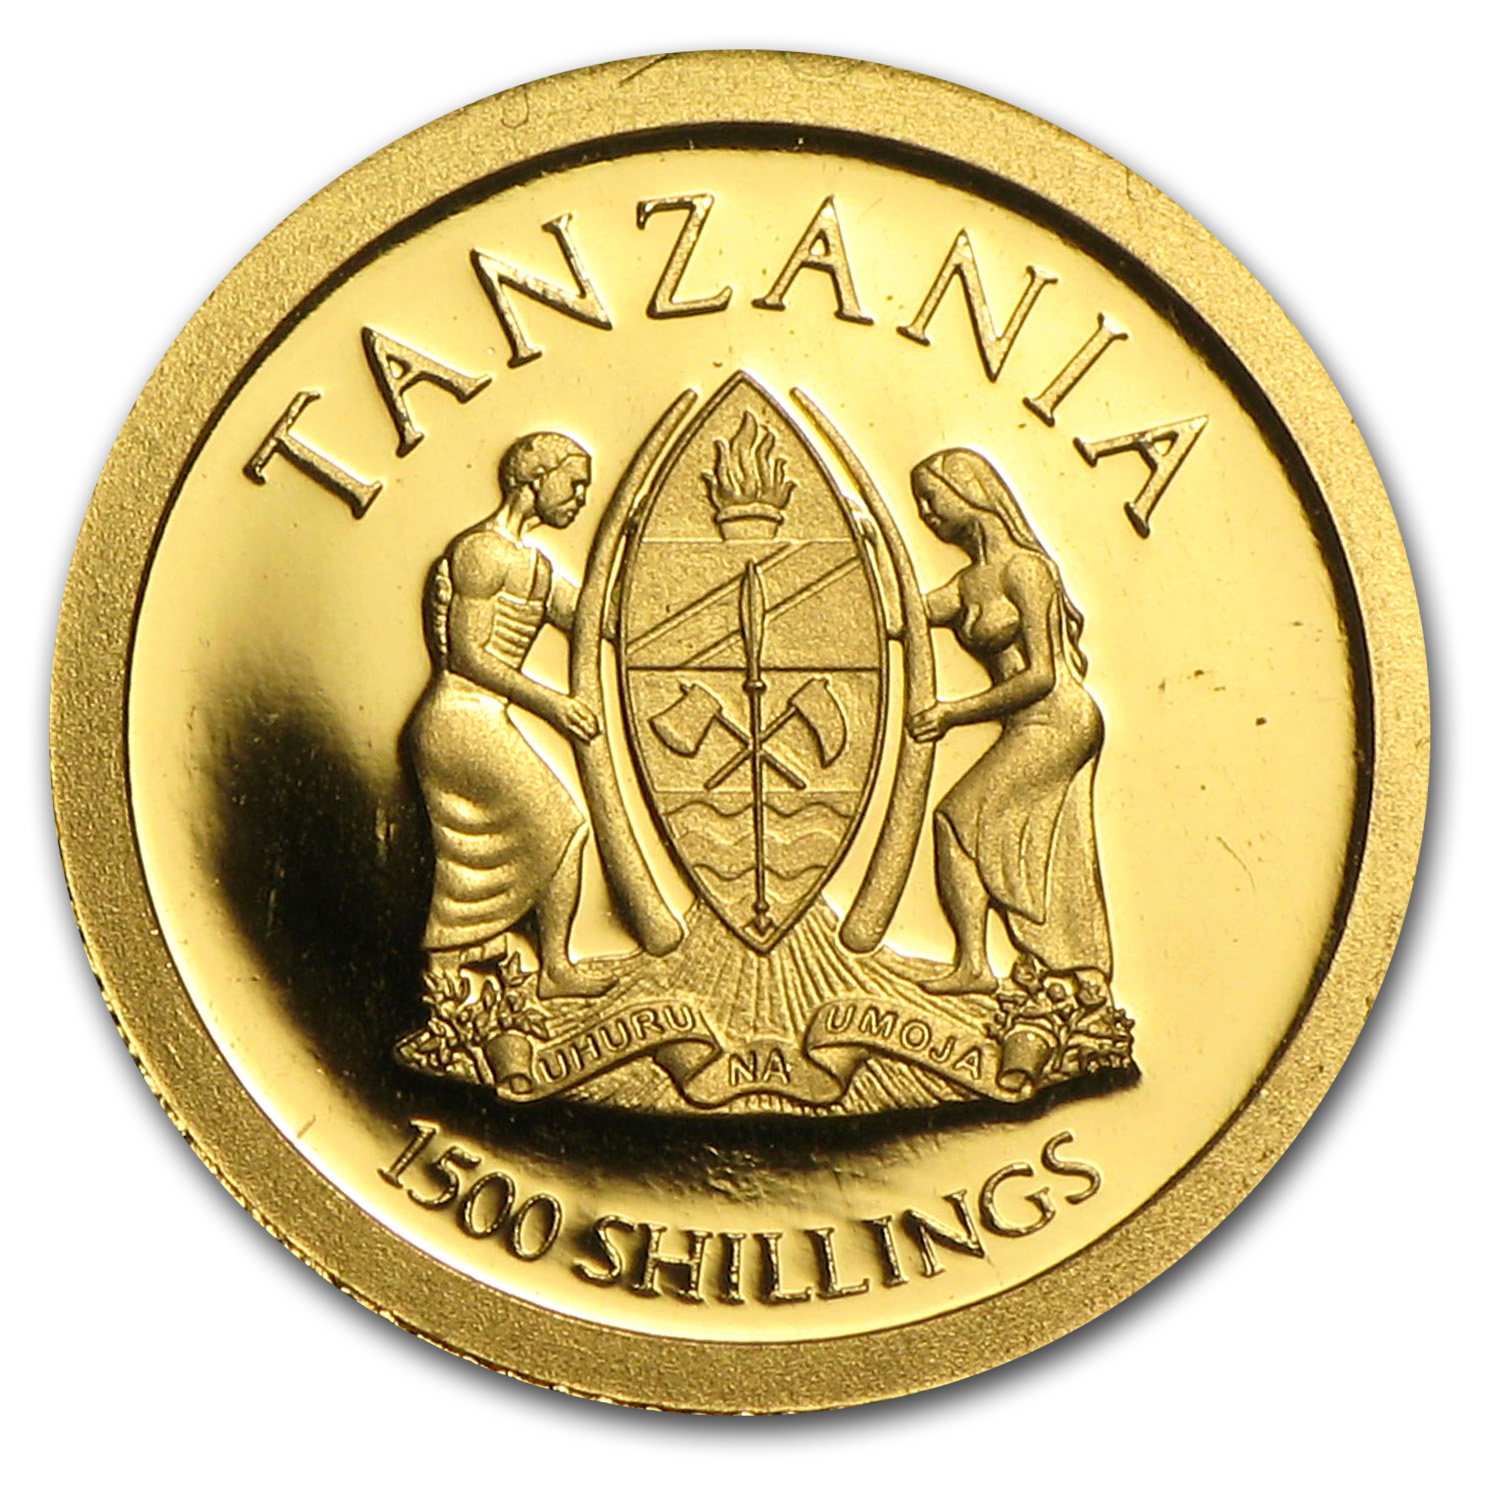 Tanzania 2013 Gold Serengeti Wildlife - Cheetah (1/2 gram)